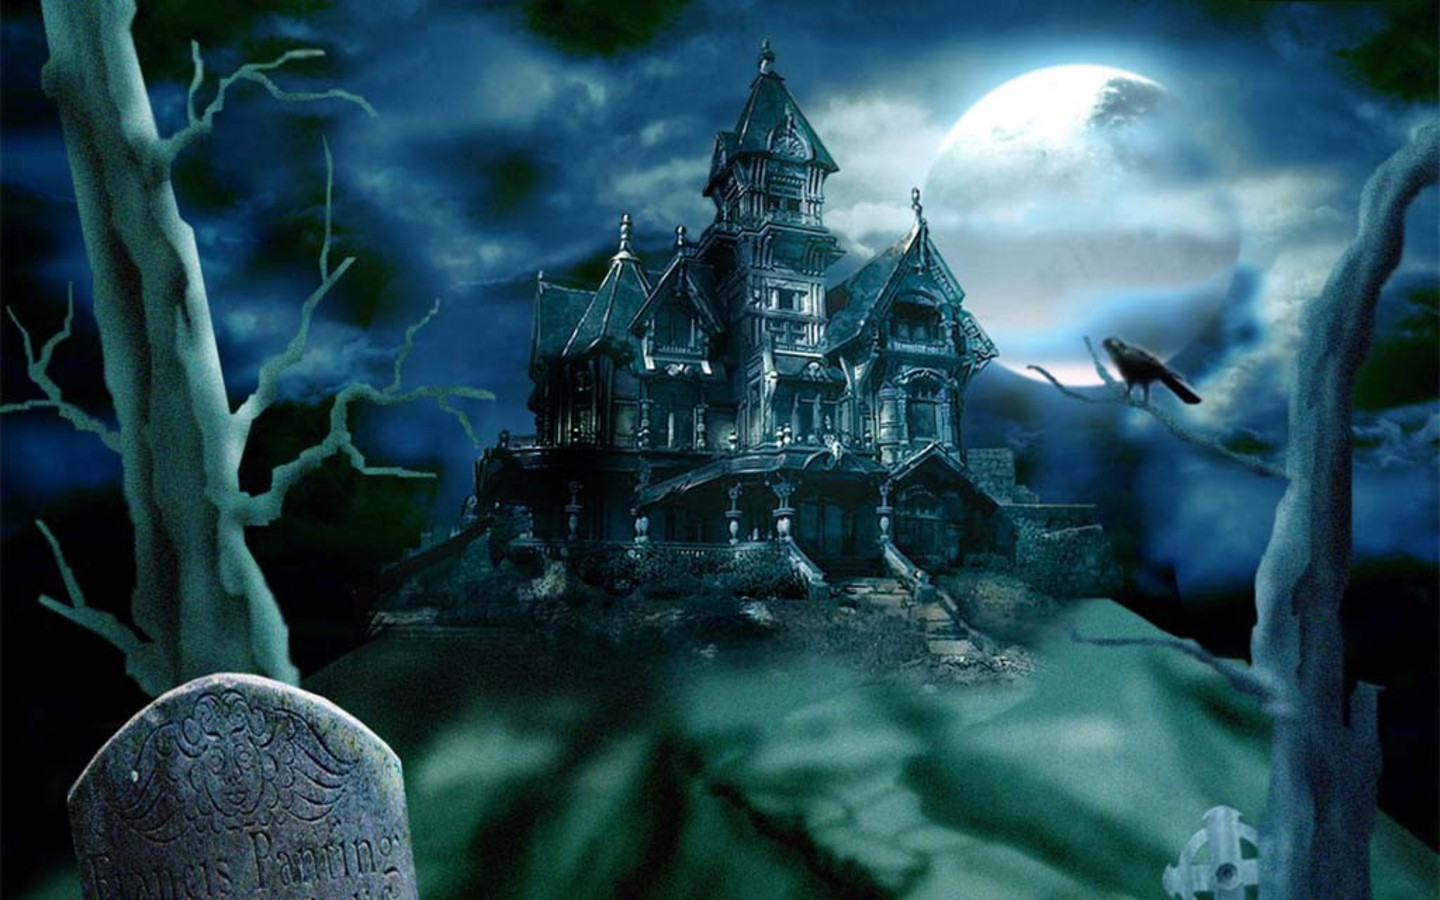 Horror Ghost Houses Wallpapers HQ Image Size 1440x900